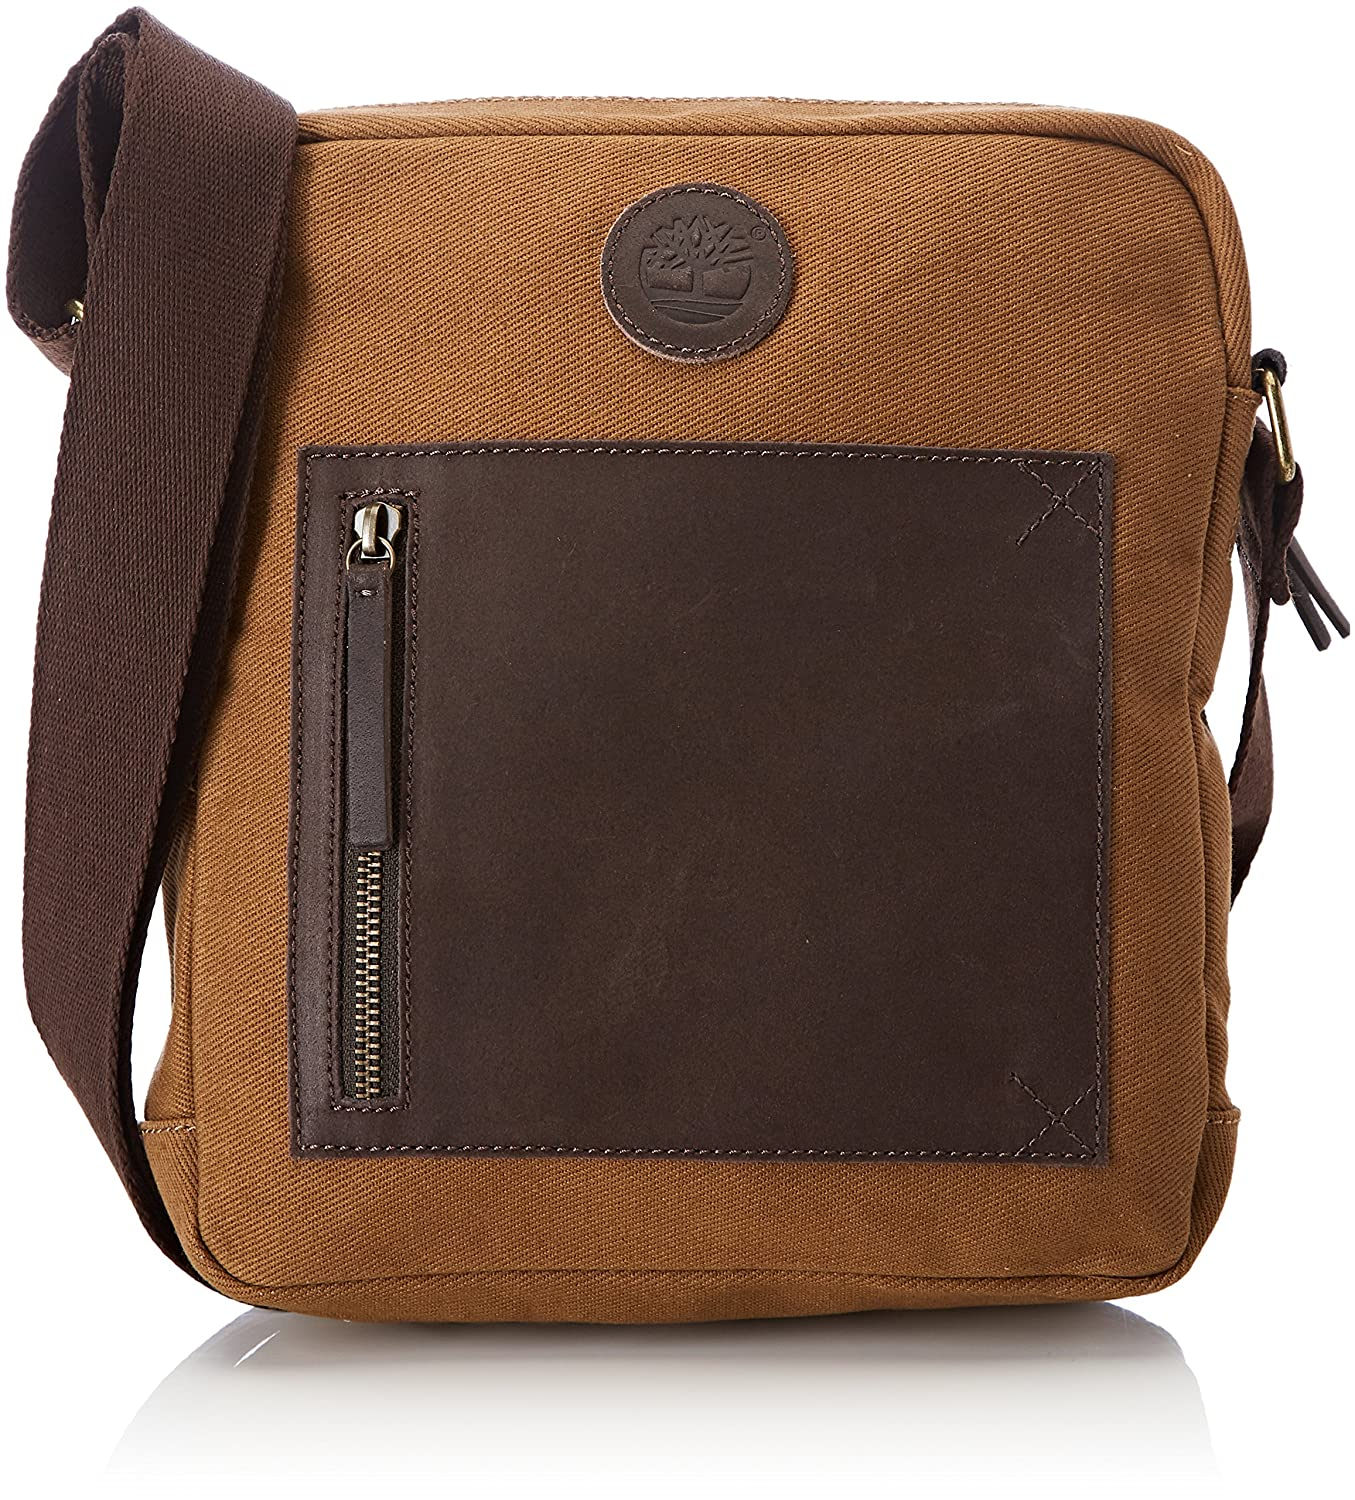 Timberland Small Cross Body Bag - Shoppers y bolsos de hombro Hombre Beige (Tan) 5x26x24 cm (W x H L) TB0M5849